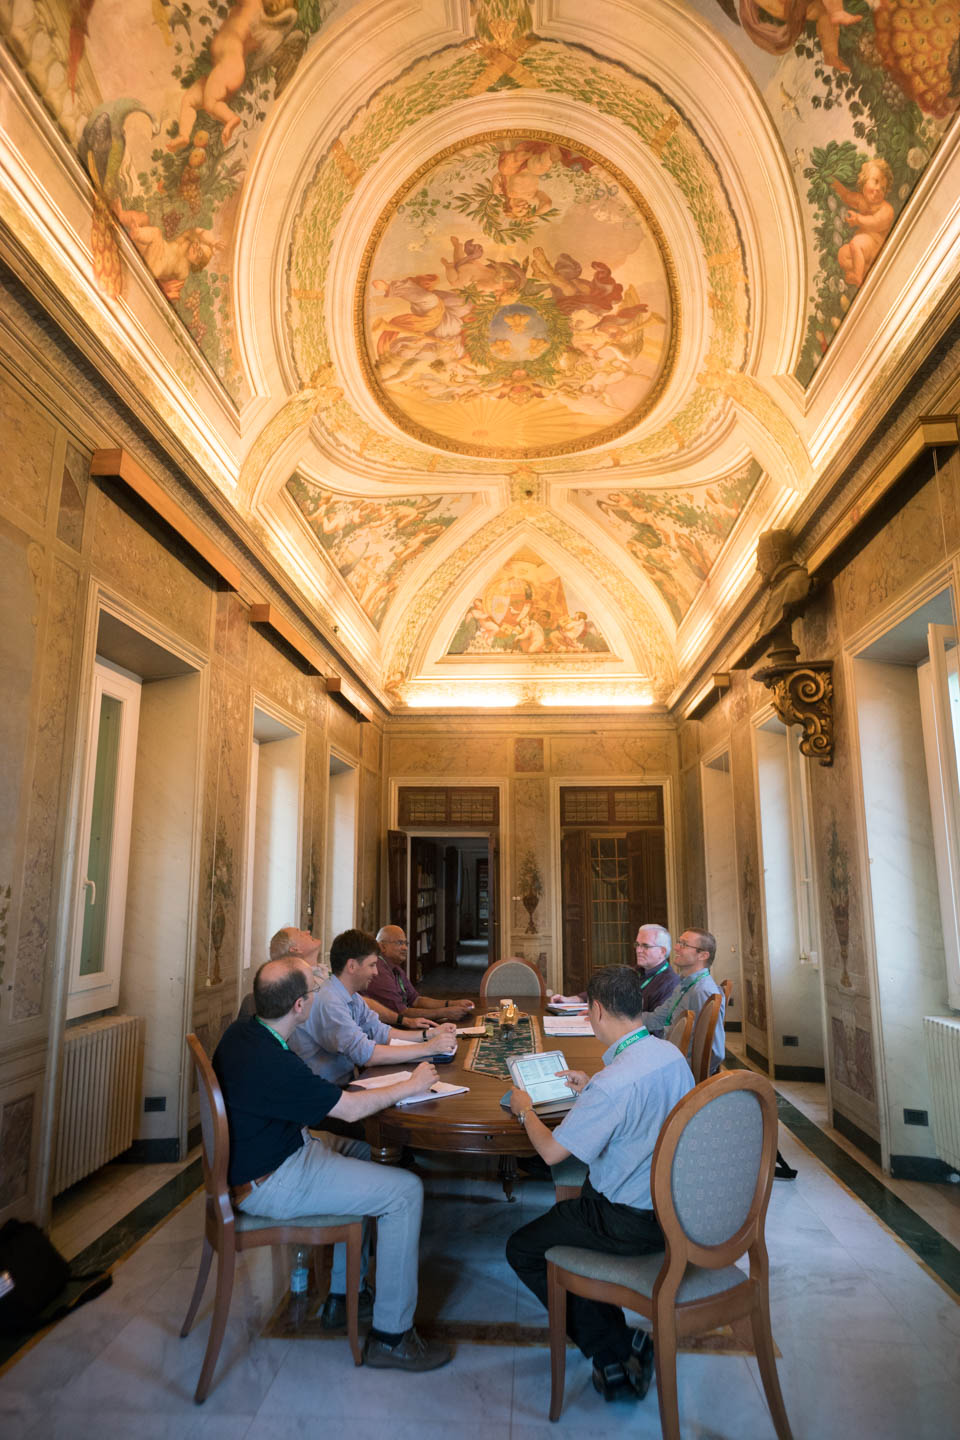 GC36 had 20 different groups working in various rooms around the Curia and the Canisio communities. This group met in the 16th century dining room of the Canisio Jesuit Community.